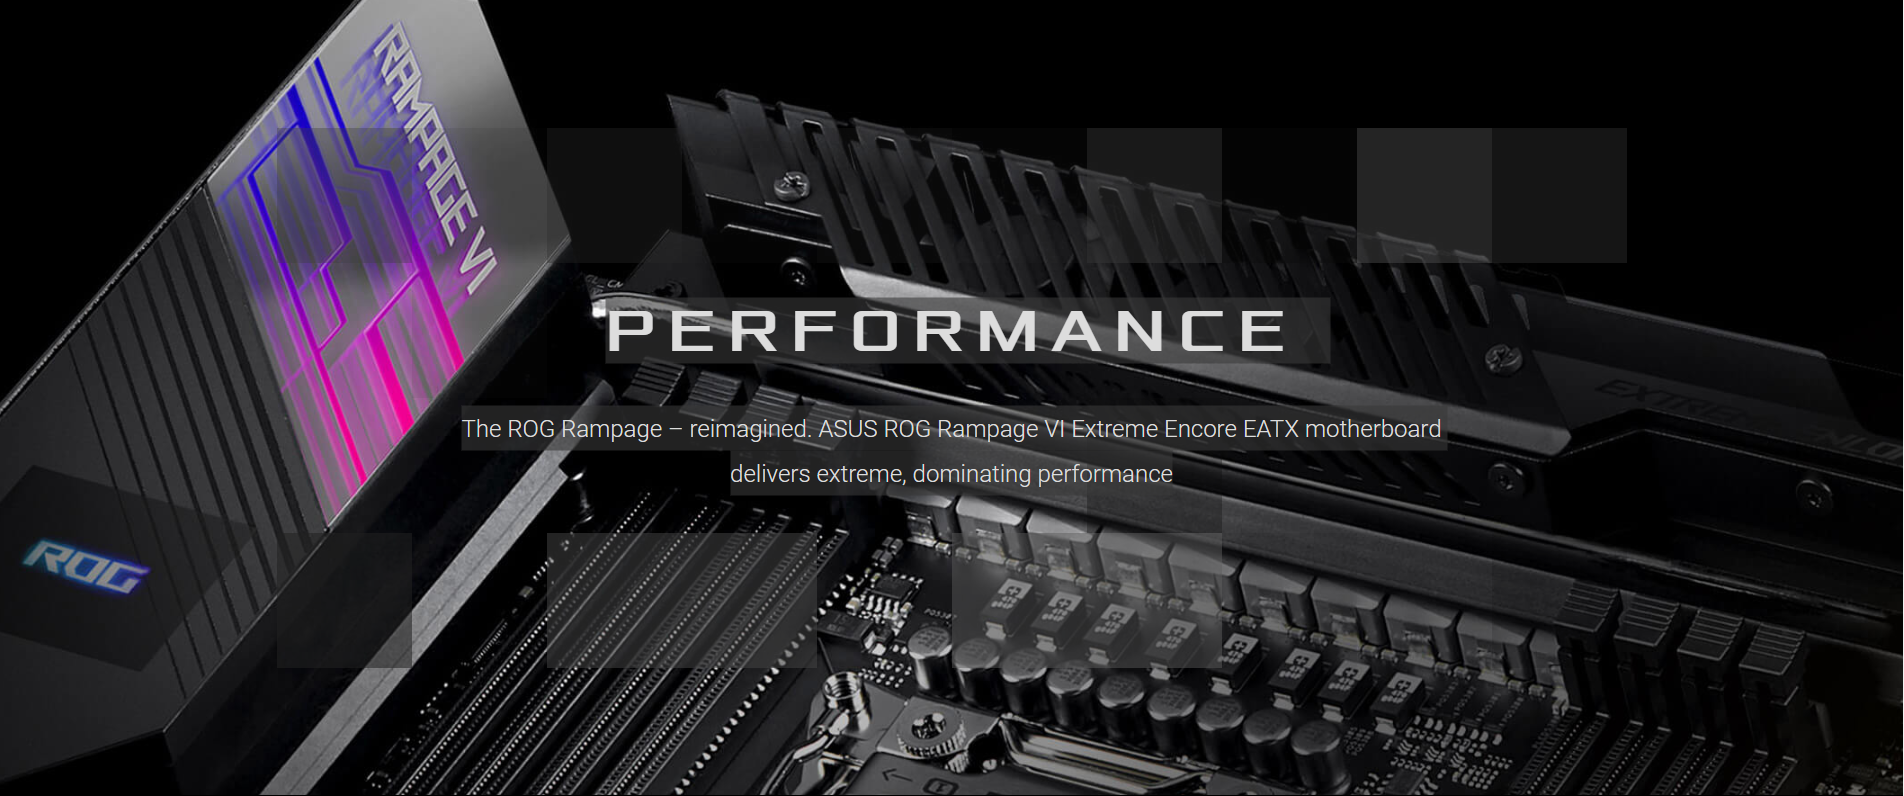 The ROG Rampage – reimagined. ASUS ROG Rampage VI Extreme Encore EATX motherboard delivers extreme, dominating performance